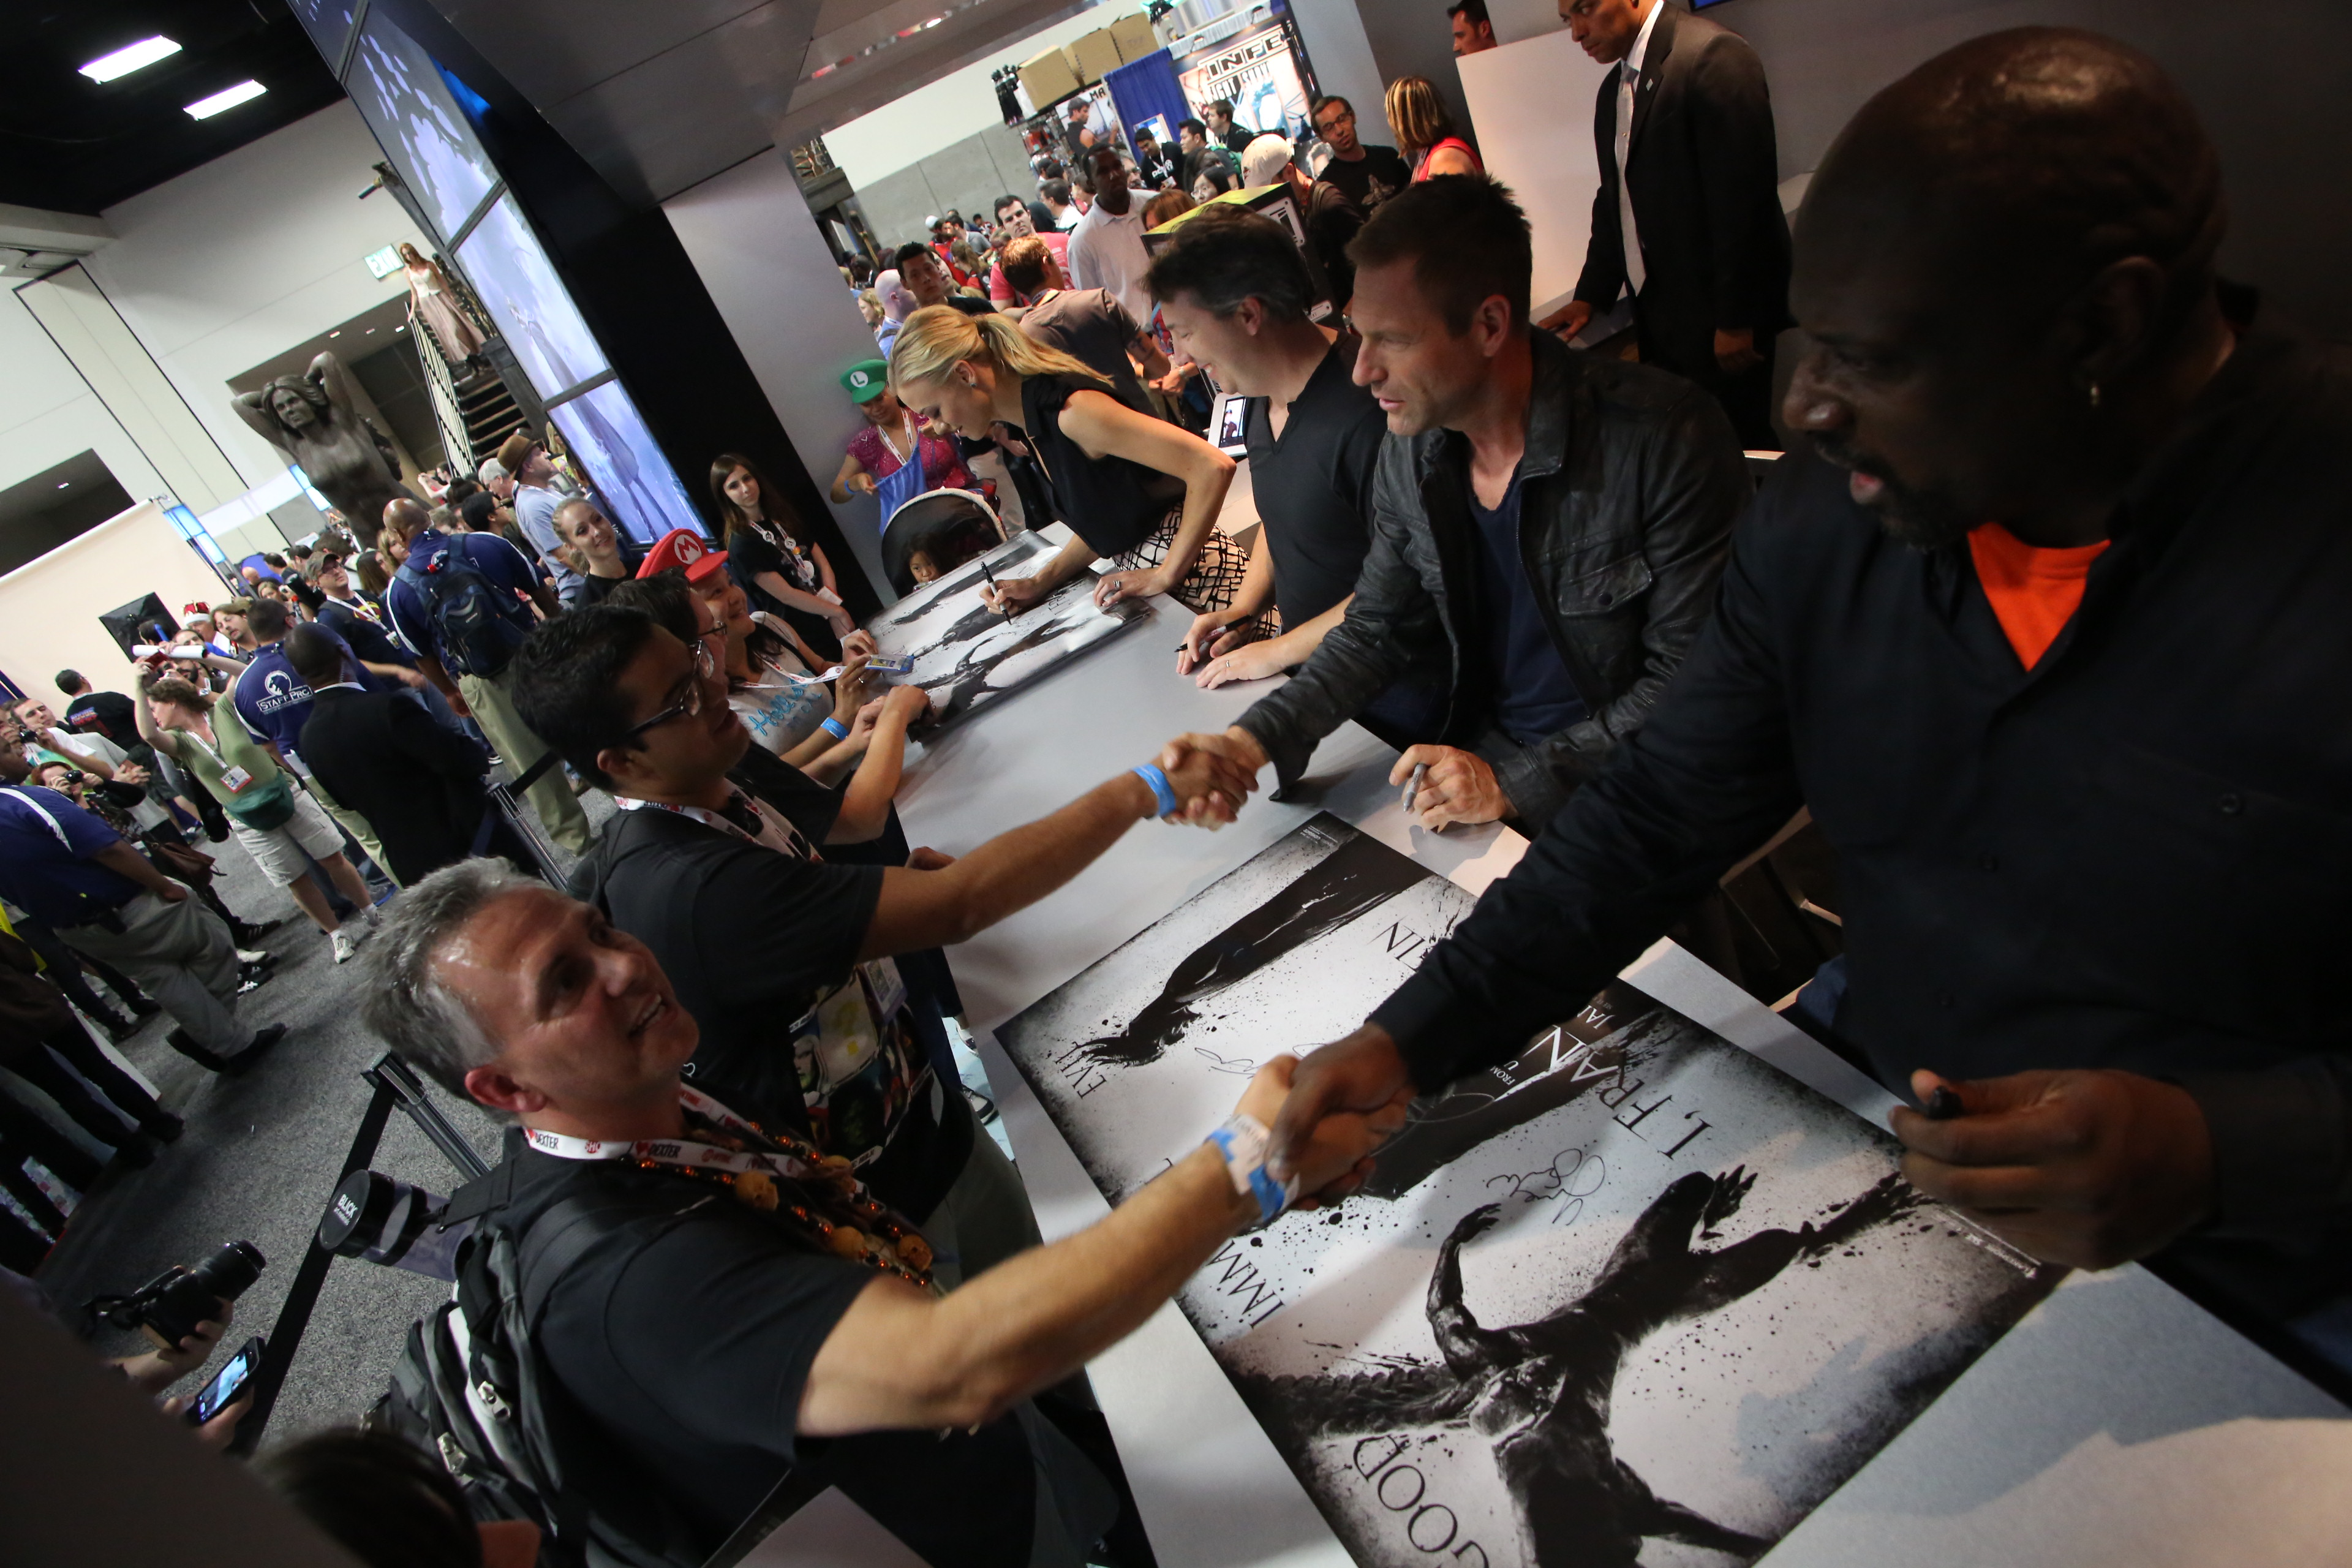 Yvonne Strahovski, Stuart Beattie, Aaron Eckhart and Kevin Grevioux at Lionsgate I, Frankenstein San Diego Comic-Con 2013 Fan Signing